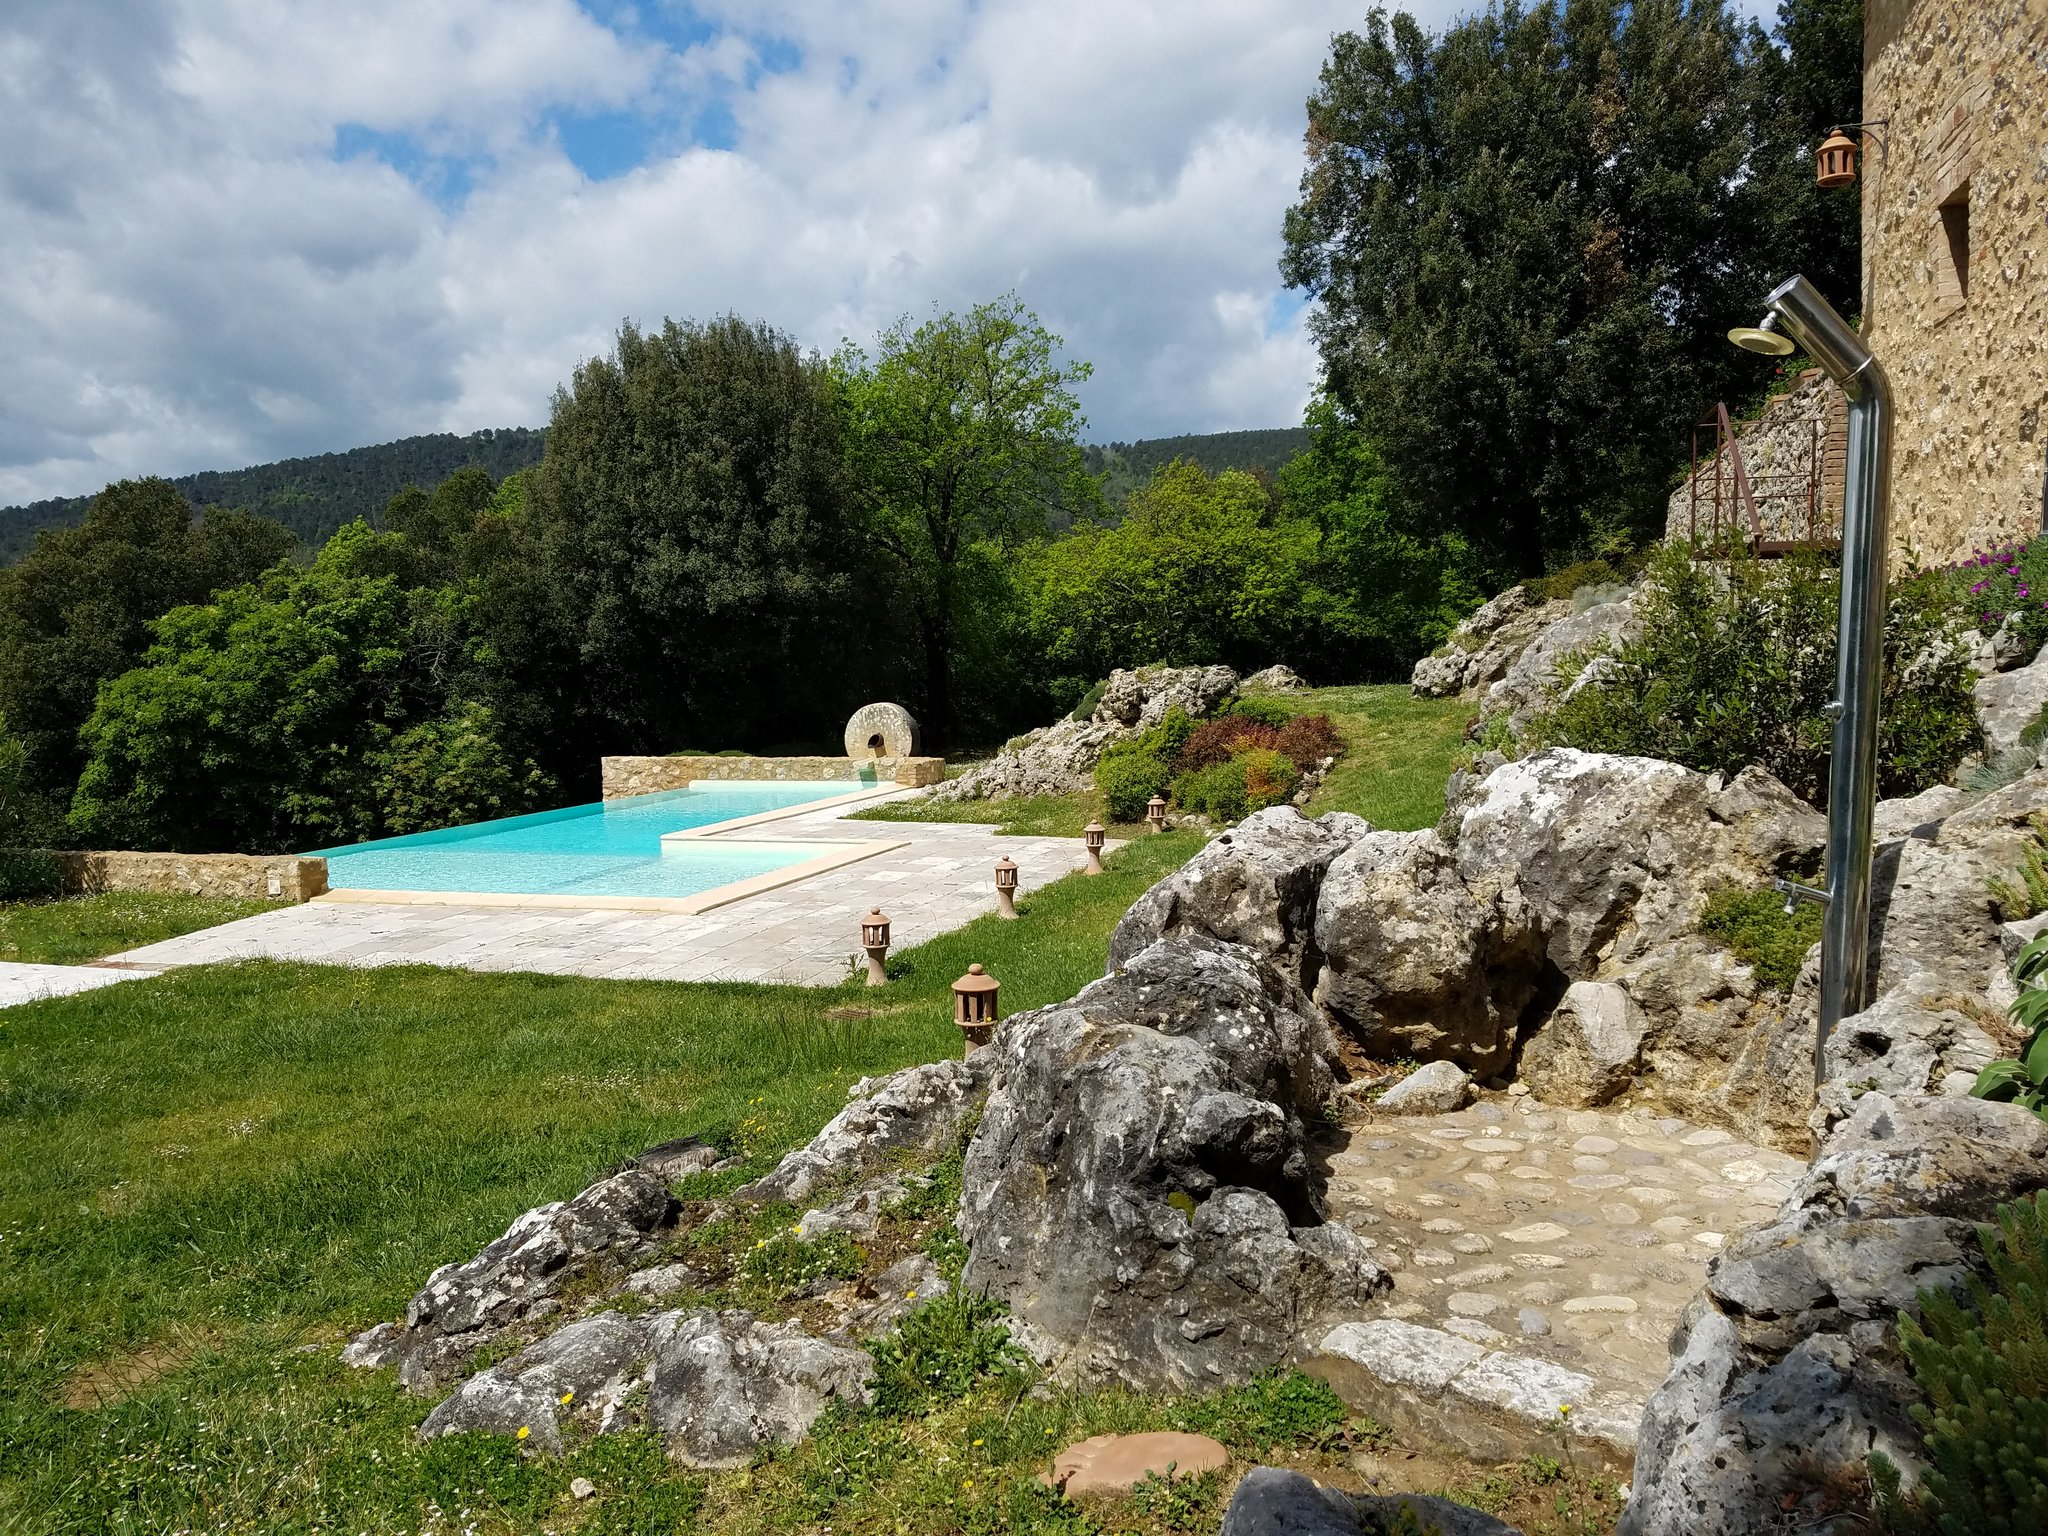 Gorgeous #luxury Villa Pipistrelli would be perfect for a #wedding or family reunion #Montestigliano #travel #italy https://t.co/zeJ5musP76